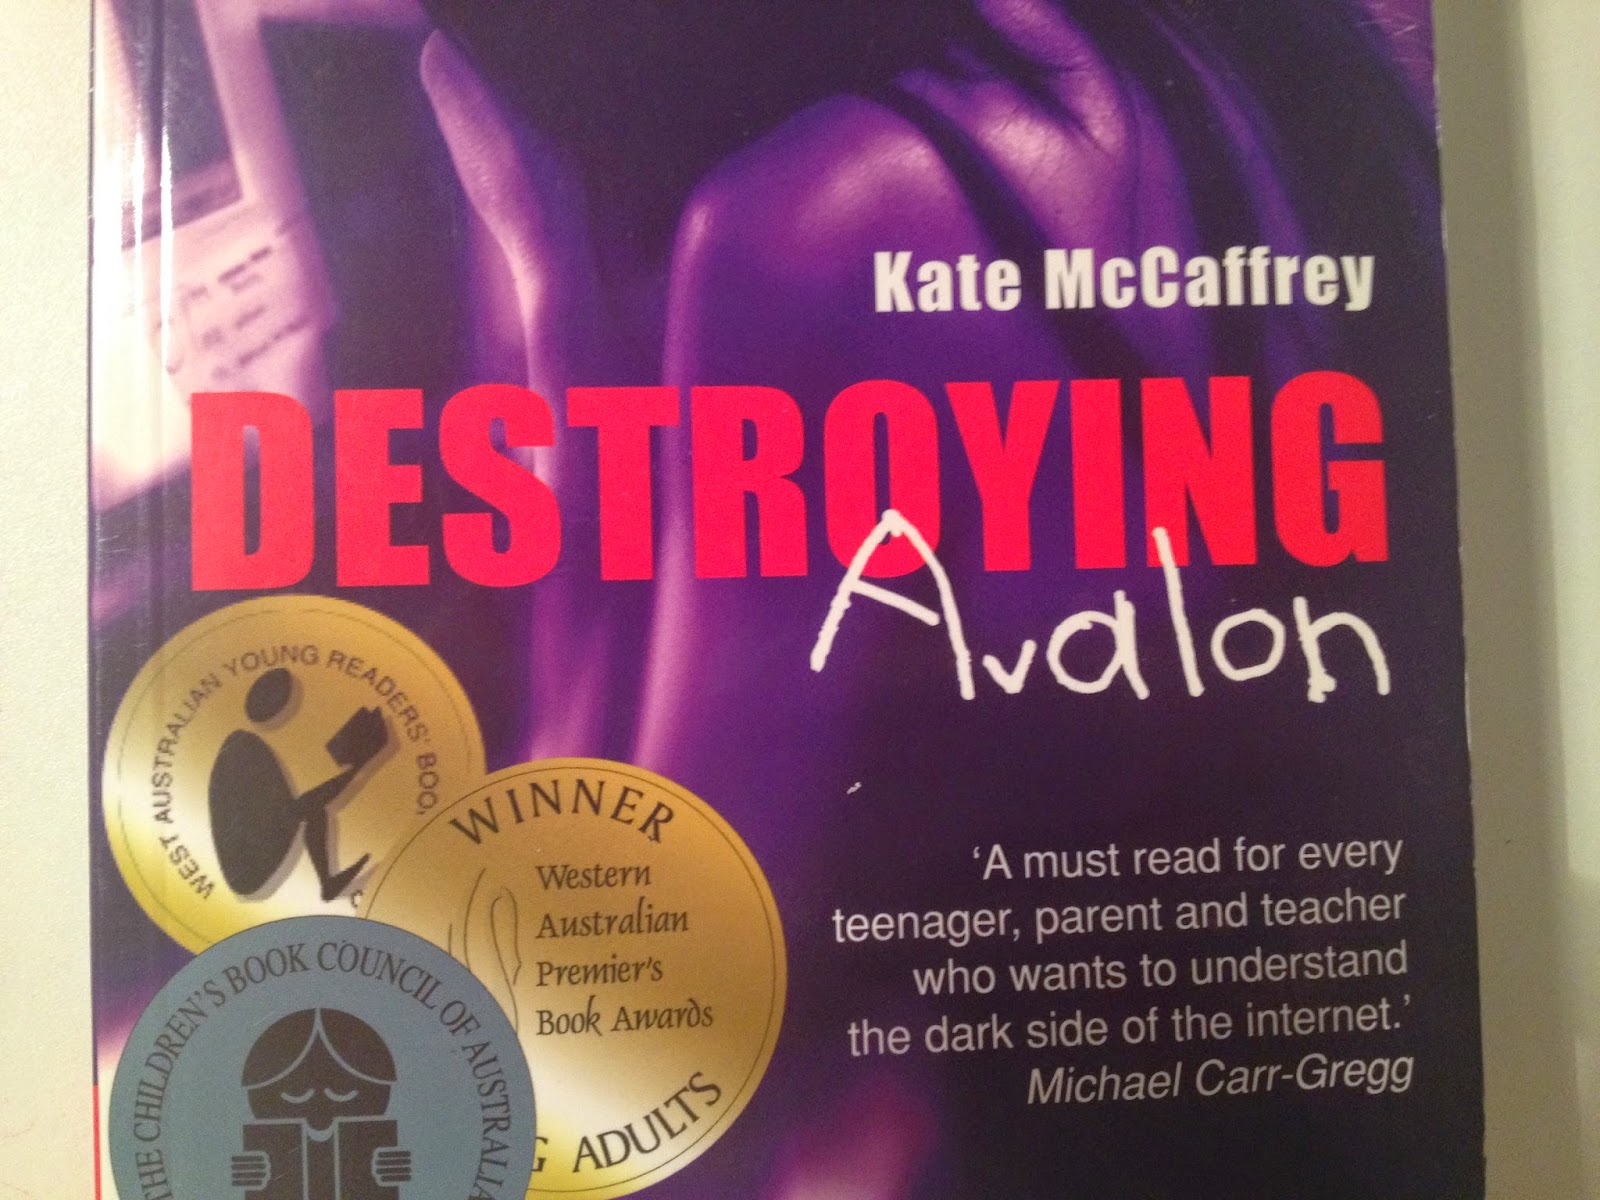 destroying avalon by kate mccaffrey tyra s bookshelf i took a deep breath and stared at the keyboard again each letter a menacing silhouette against its stark background and then the desire to know overcame